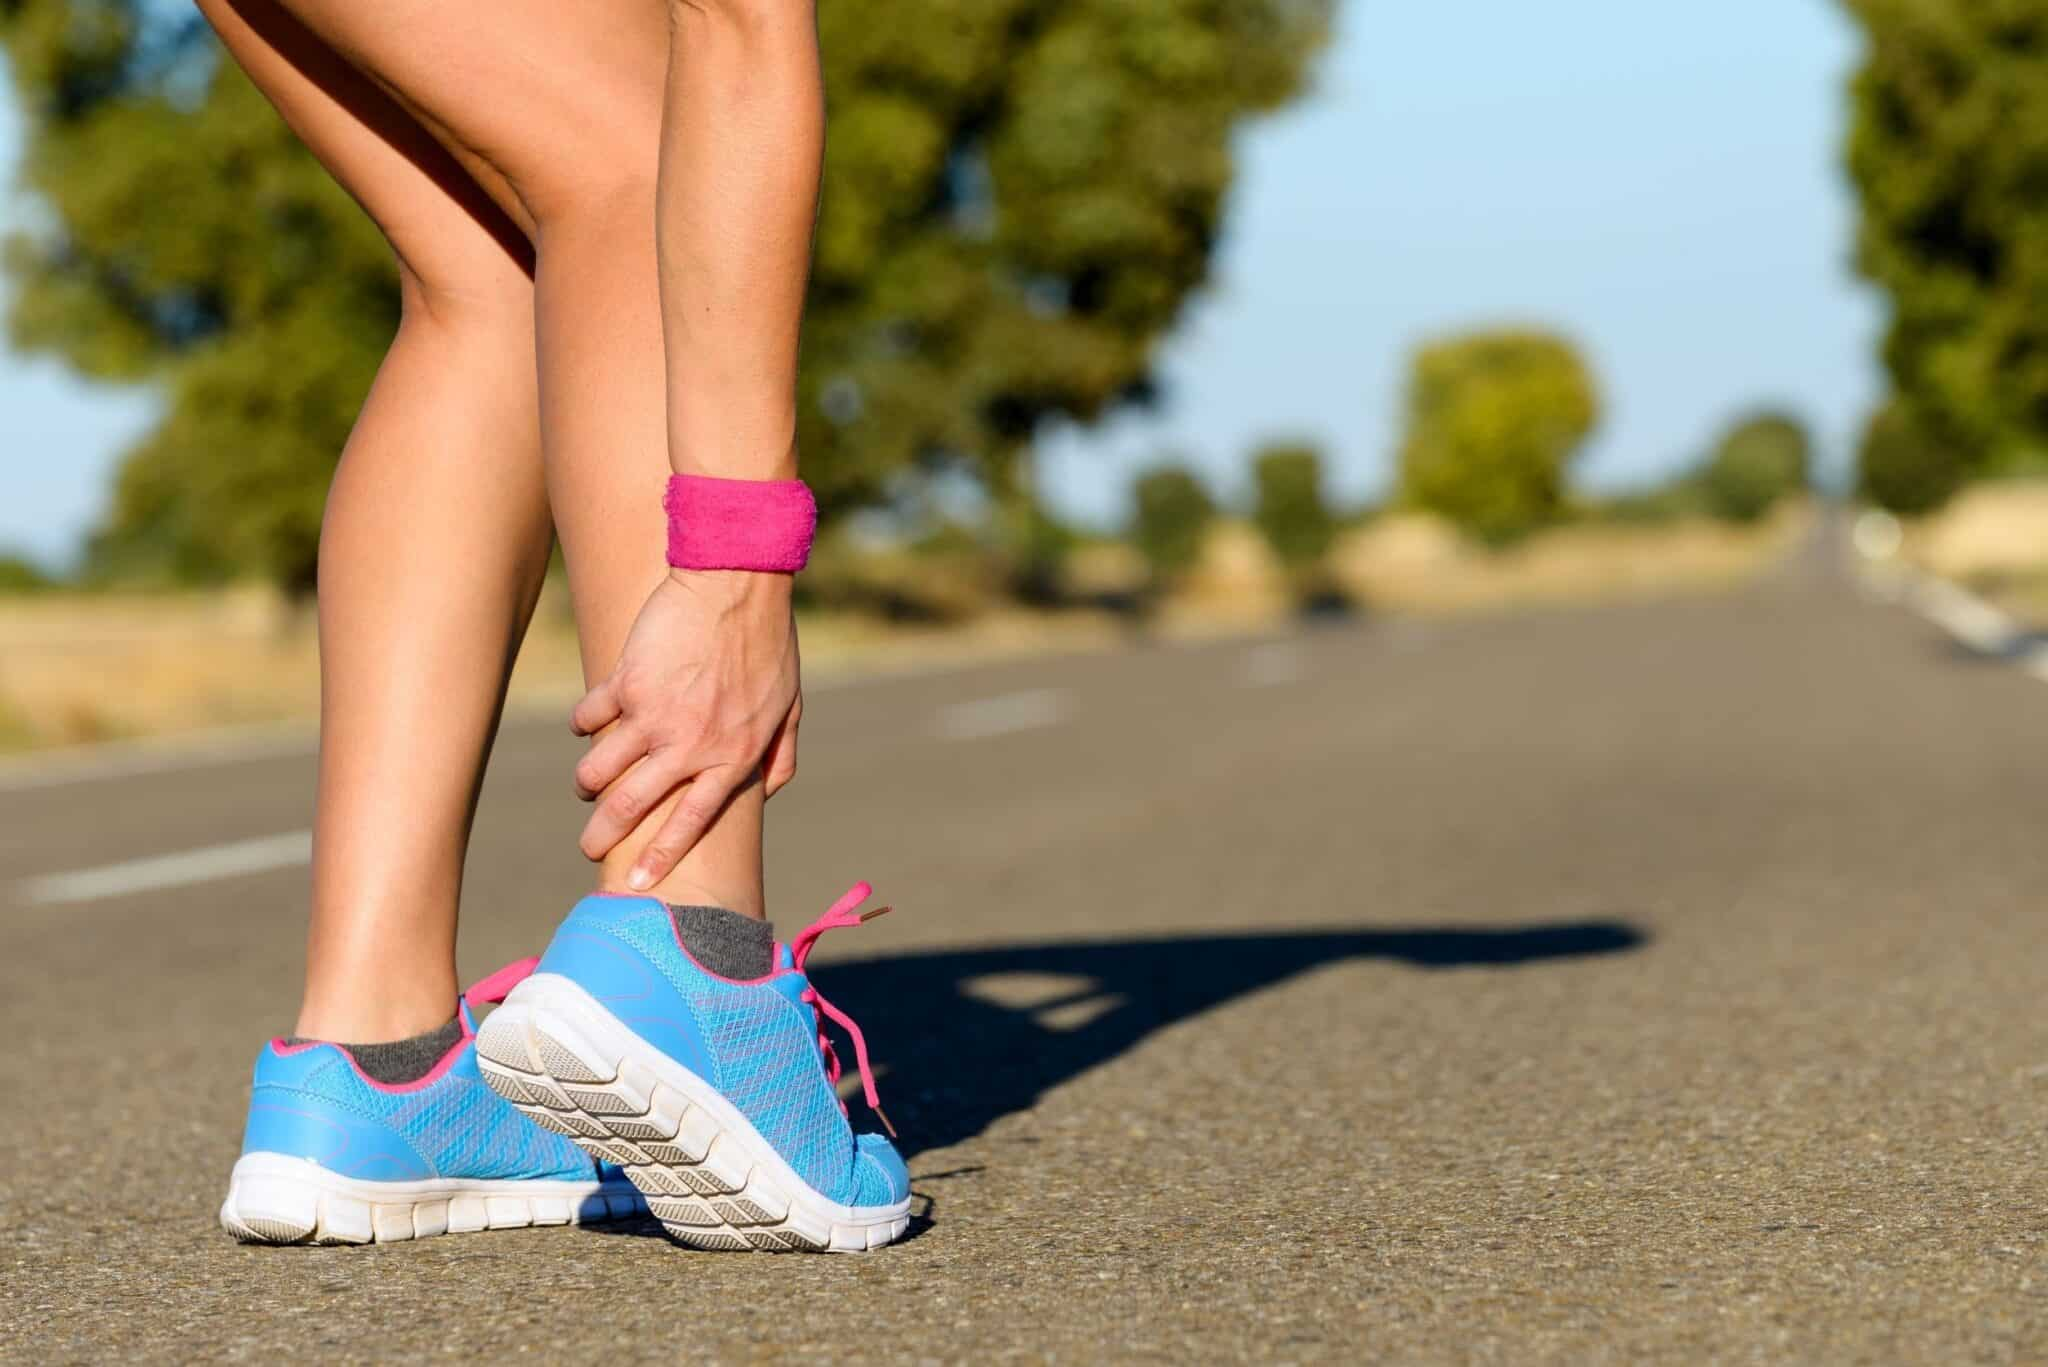 Changes to Your Lifestyle That Can Help Prevent Running Injuries